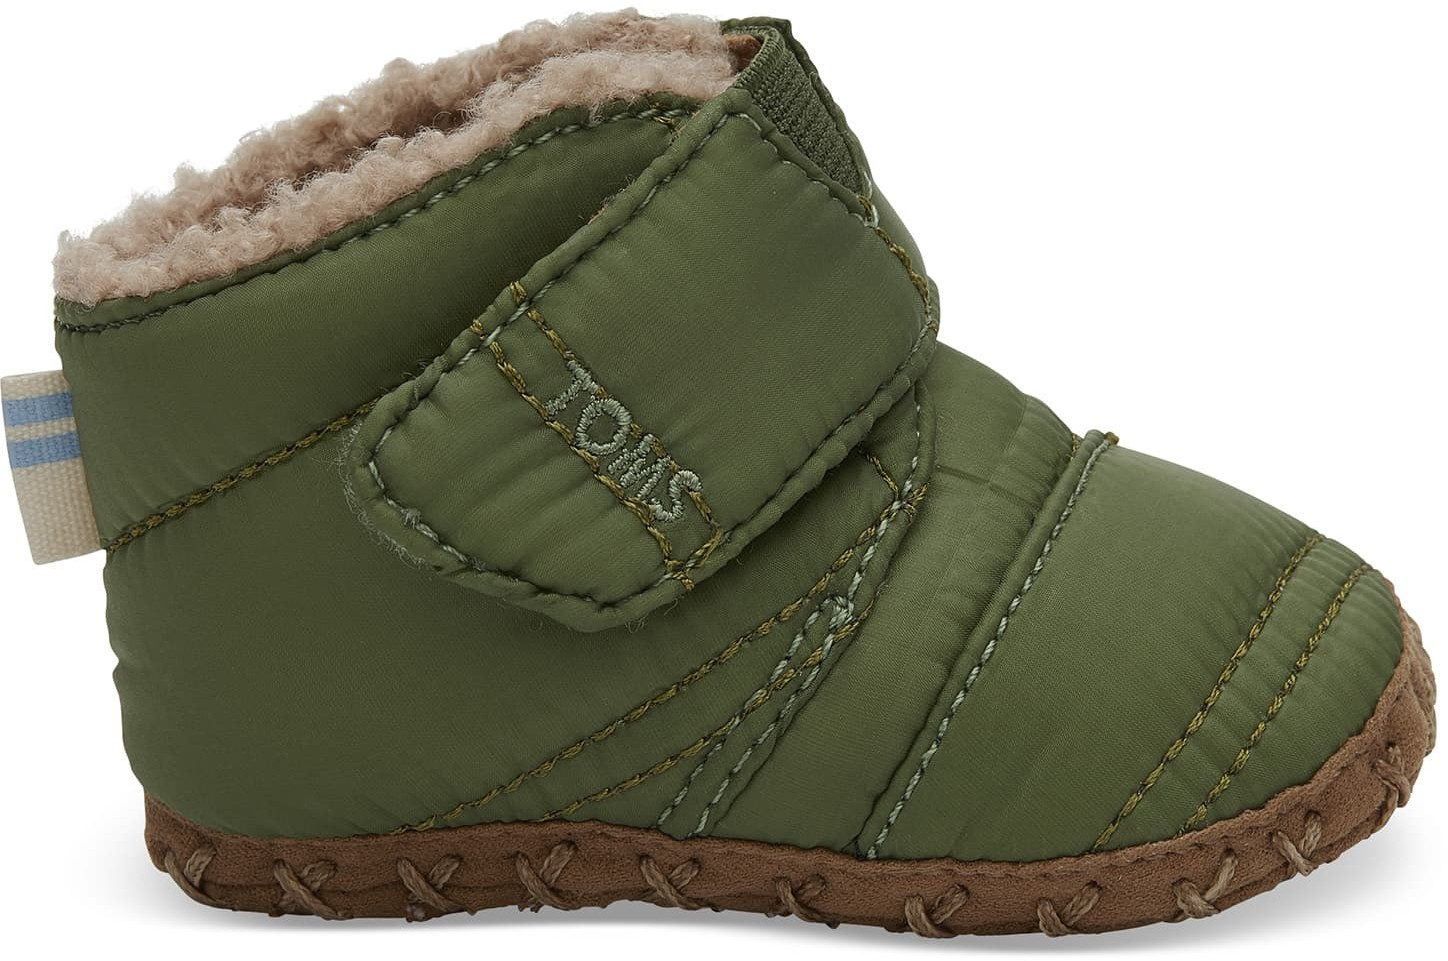 Toms Light Pine Quilted Tiny TOMS Cuna Crib - Size UK3 / US4 Shoes